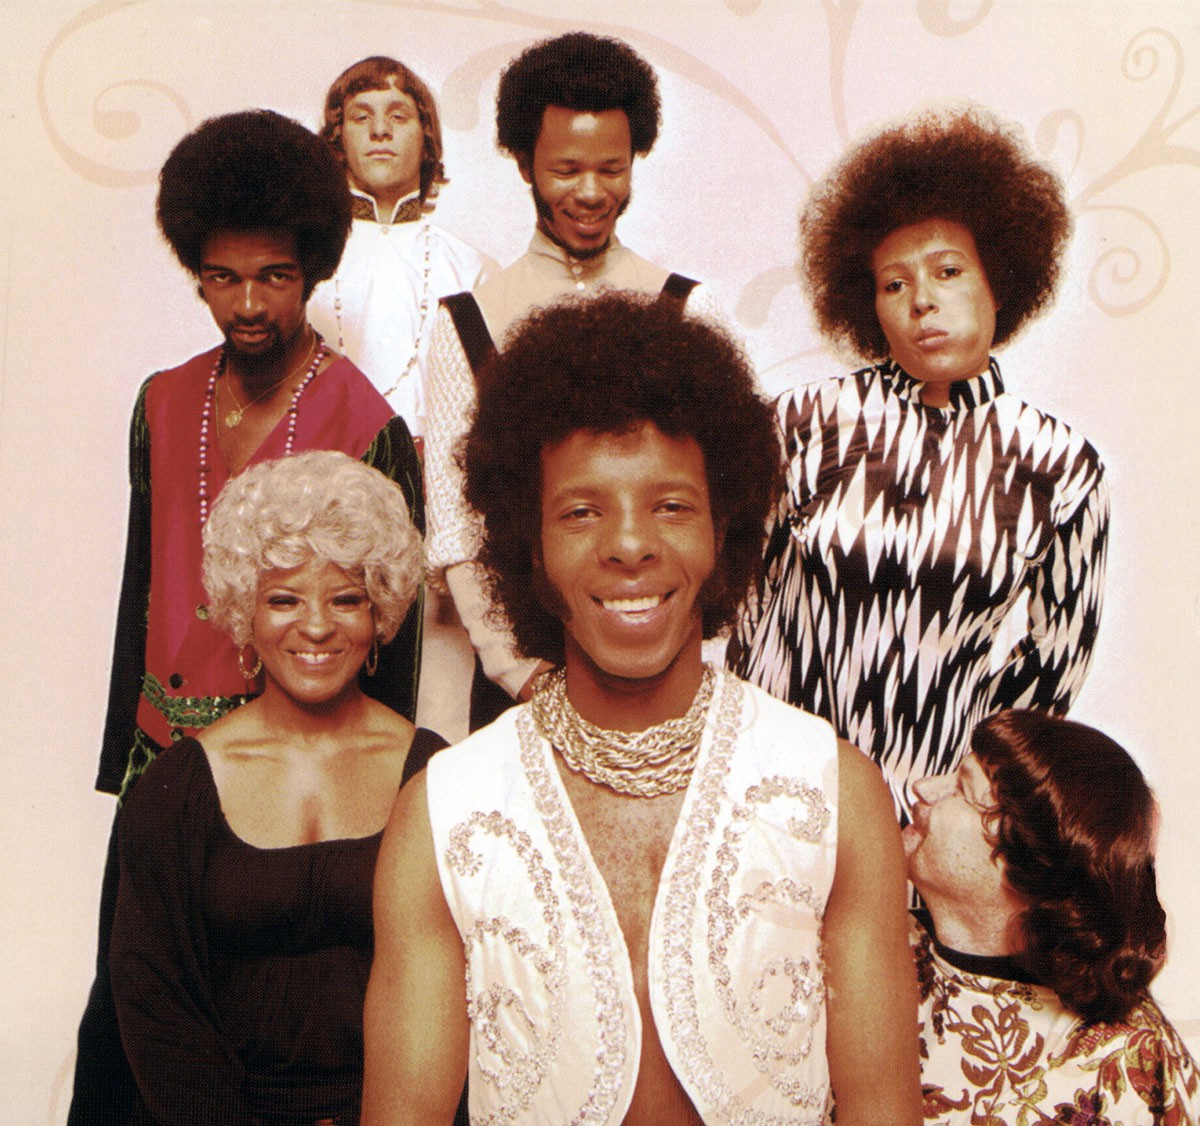 Sly and the Family Stone. L-R (back): Larry Graham, Gregg Errico, Freddie Stone, Cynthia Robinson; (front): Rose Stone, Sly Stone, Jerry Martini